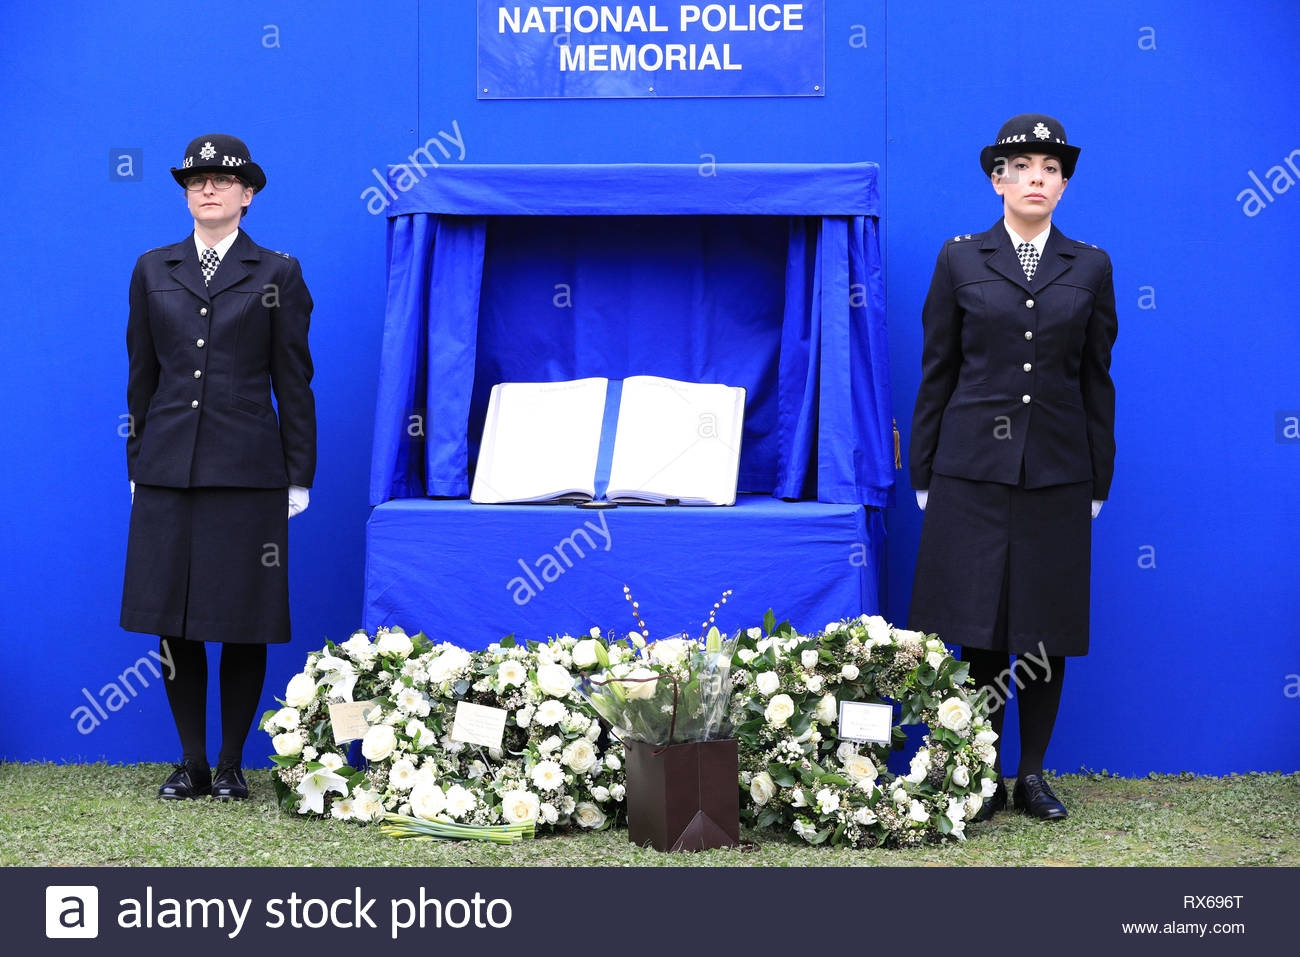 London Uk 8th Mar 2019 Commemorative Wrath At The National Police